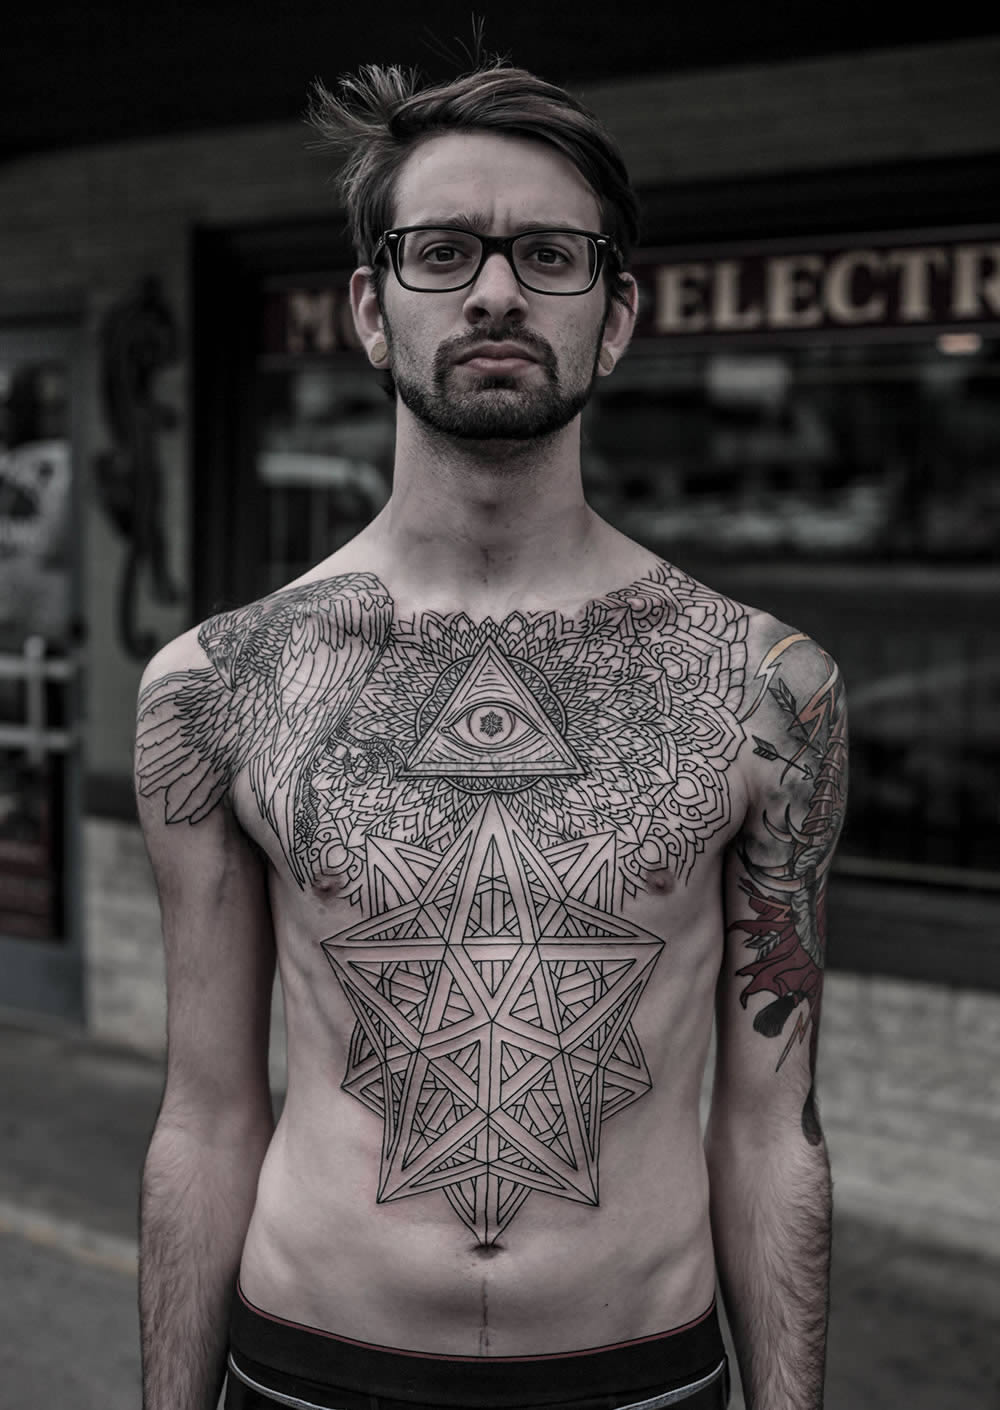 c216264e8e665 amazing chest tattoo with eye of providence by thomas hooper